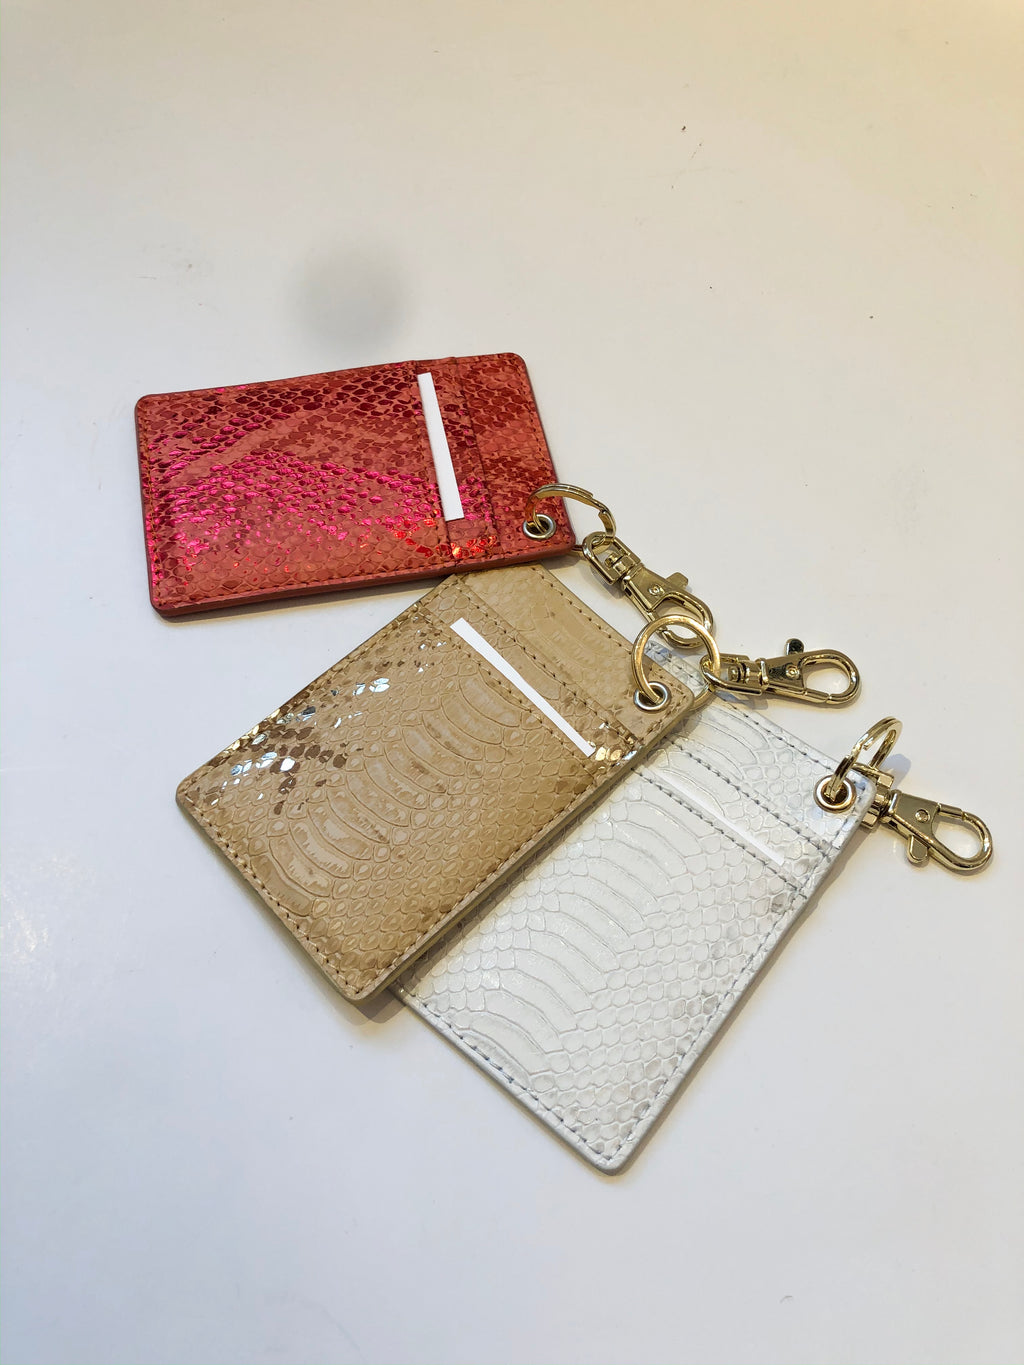 Reptile Embossed Card Holder with Key Chain